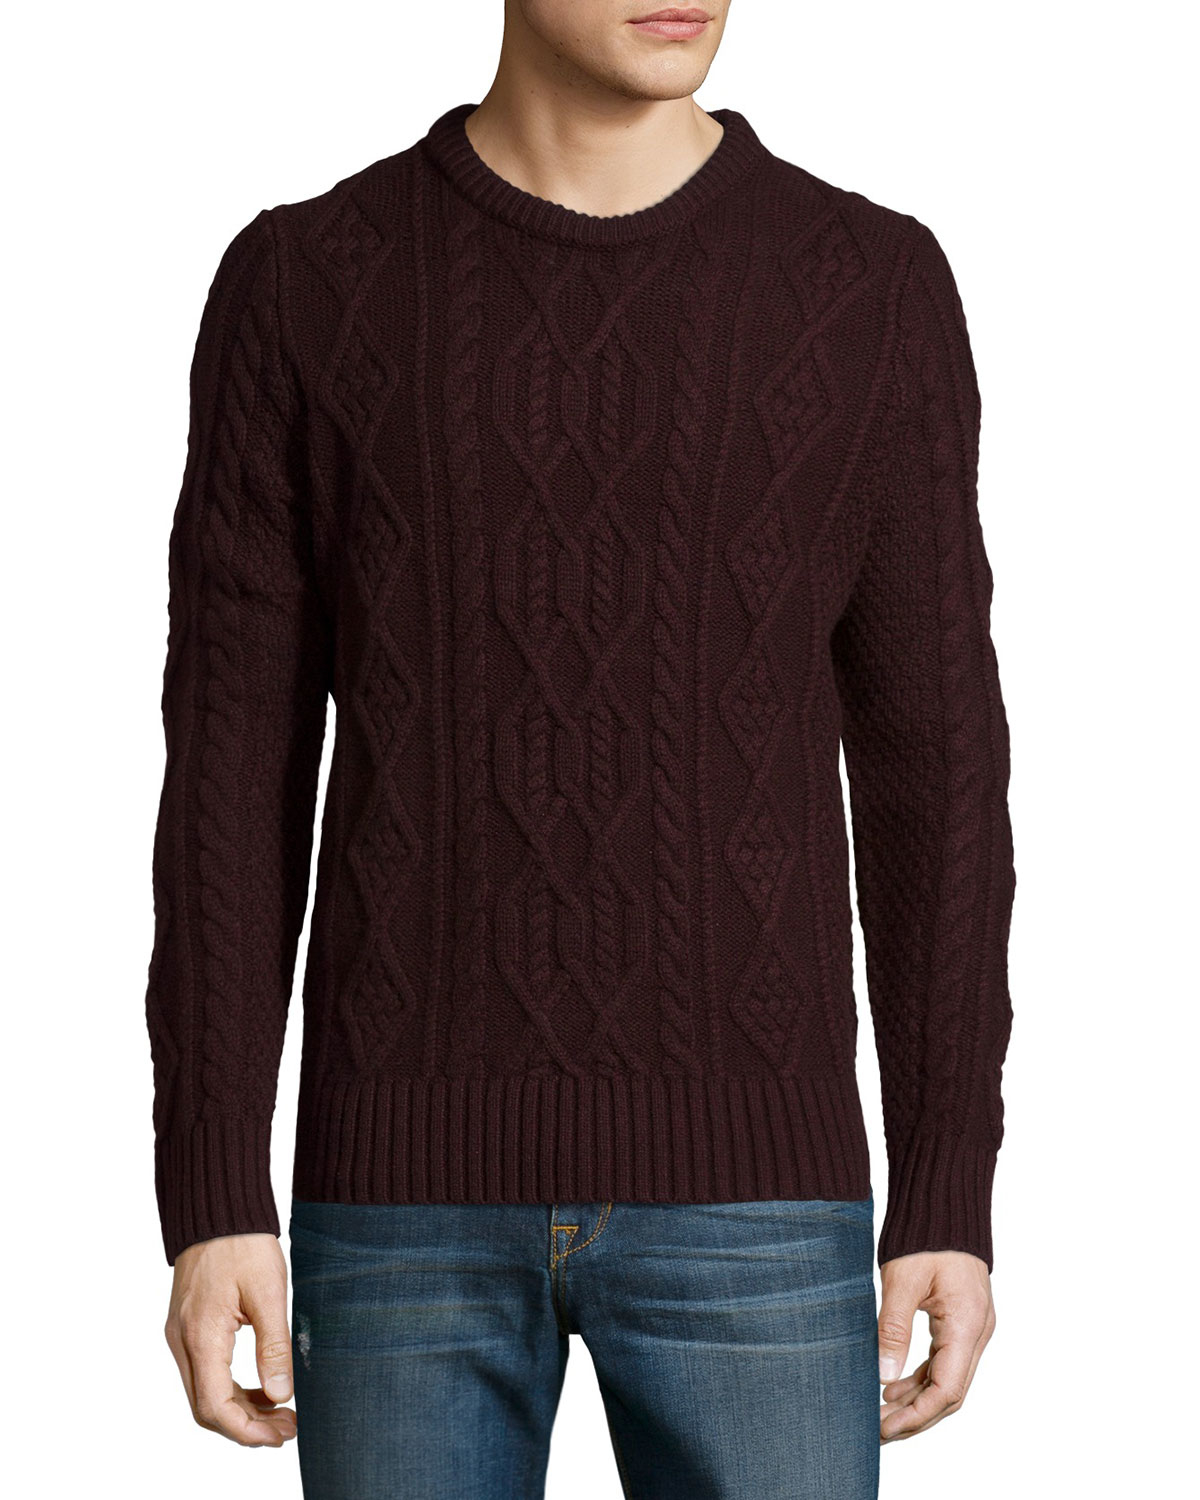 Stay warm with the Lacoste Men's Knitwear collection: wool knitwear, cotton jumpers or turtleneck sweaters at the LACOSTE digital boutique. BLACK GREY WHITE BROWN BEIGE GREEN BLUE RED YELLOW Size 10 - 5XL 10 Men's Crew Neck Wool Cable Knit Effect Sweater + 2 colors £ Men's Crew Neck Honeycomb Cotton Sweater .